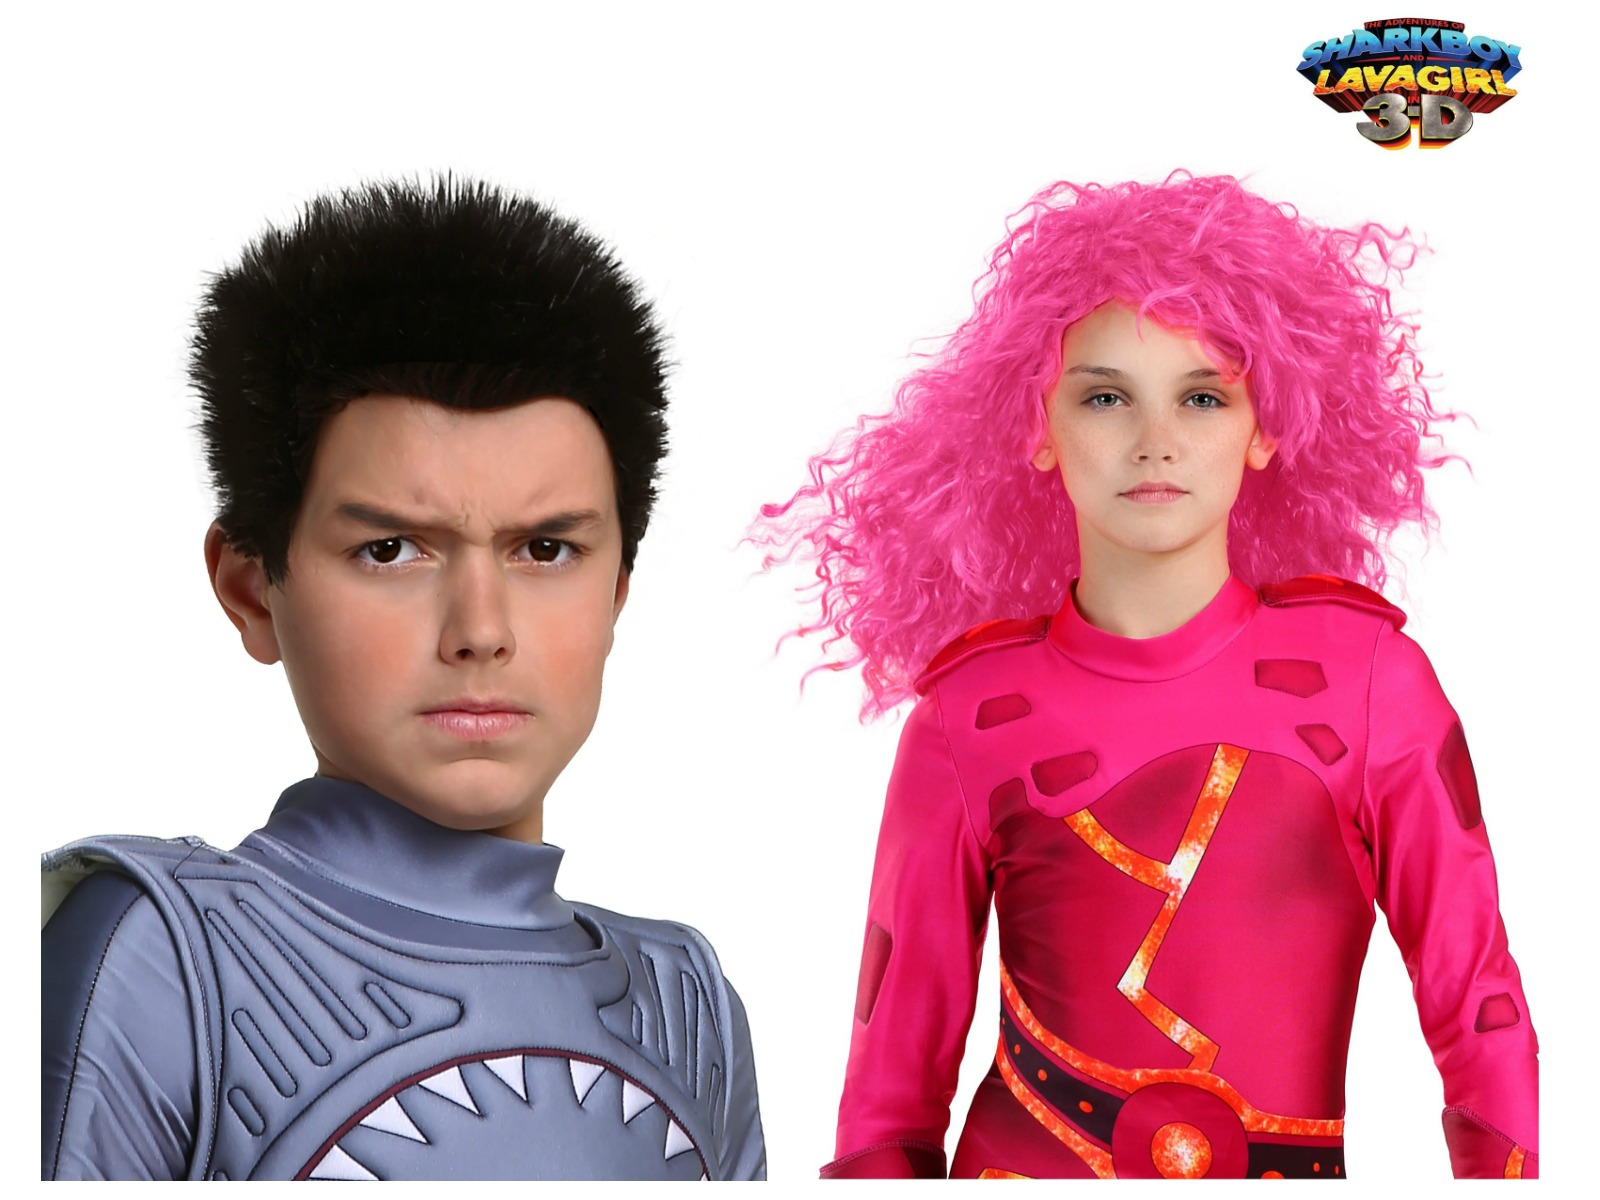 Sharkboy and Lavagirl wigs